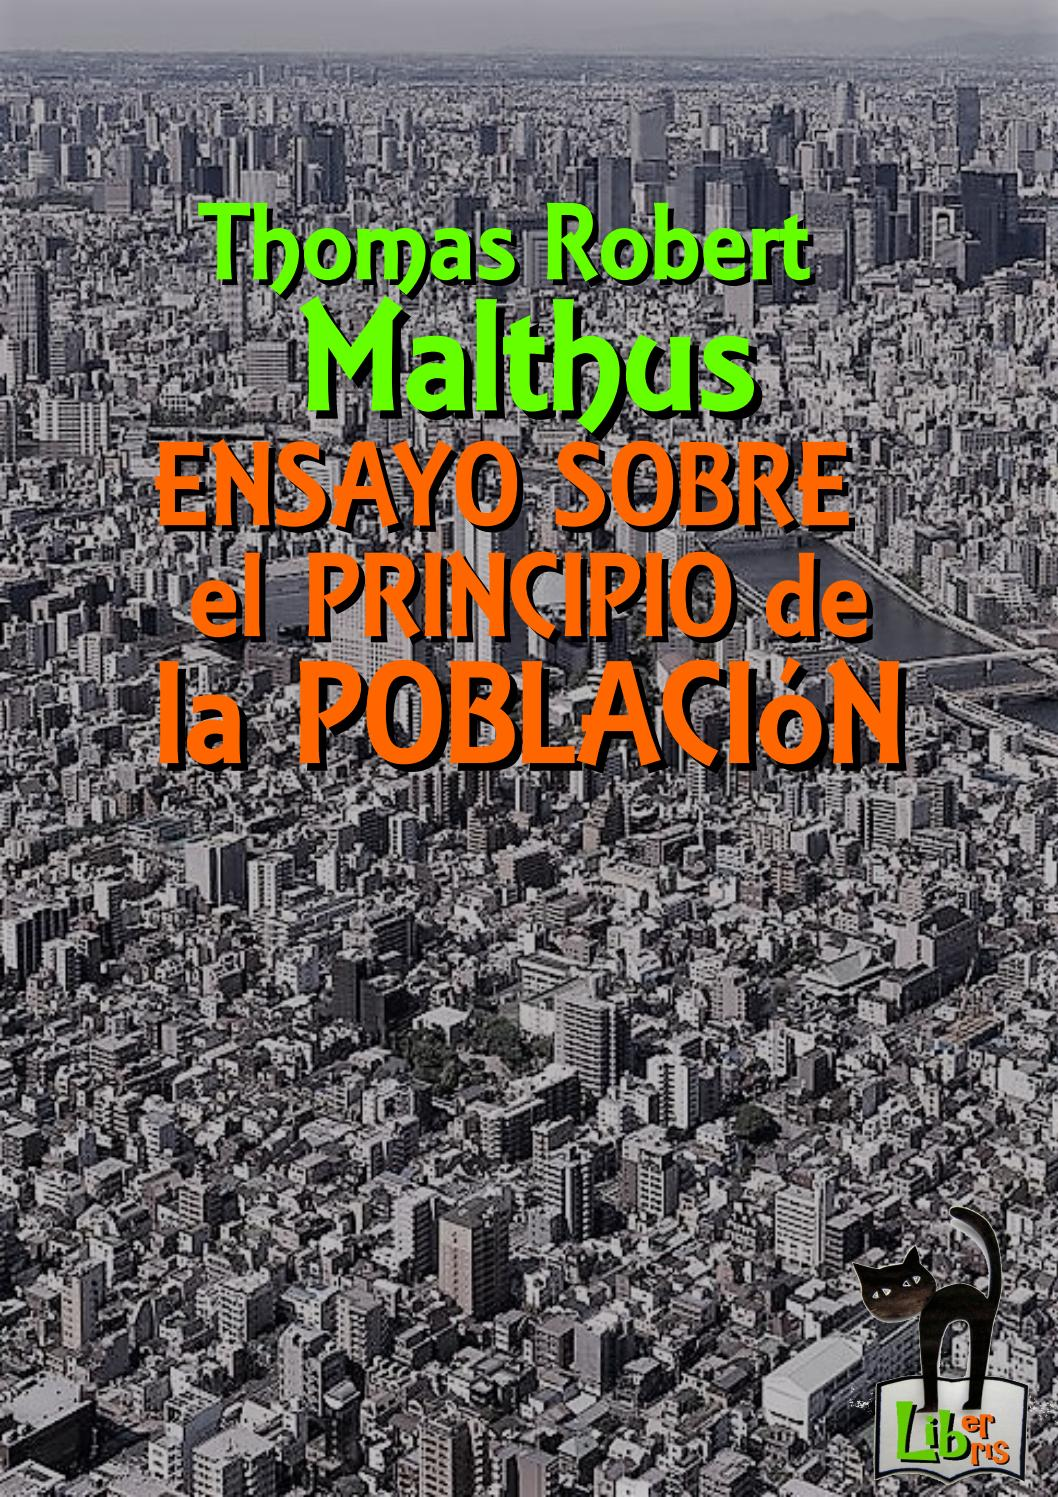 en 1798 malthus publish an essay on the principle of population The framework of the first essay in the first edition of an essay on the principle  of population, published anonymously in 1798, malthus provided a.